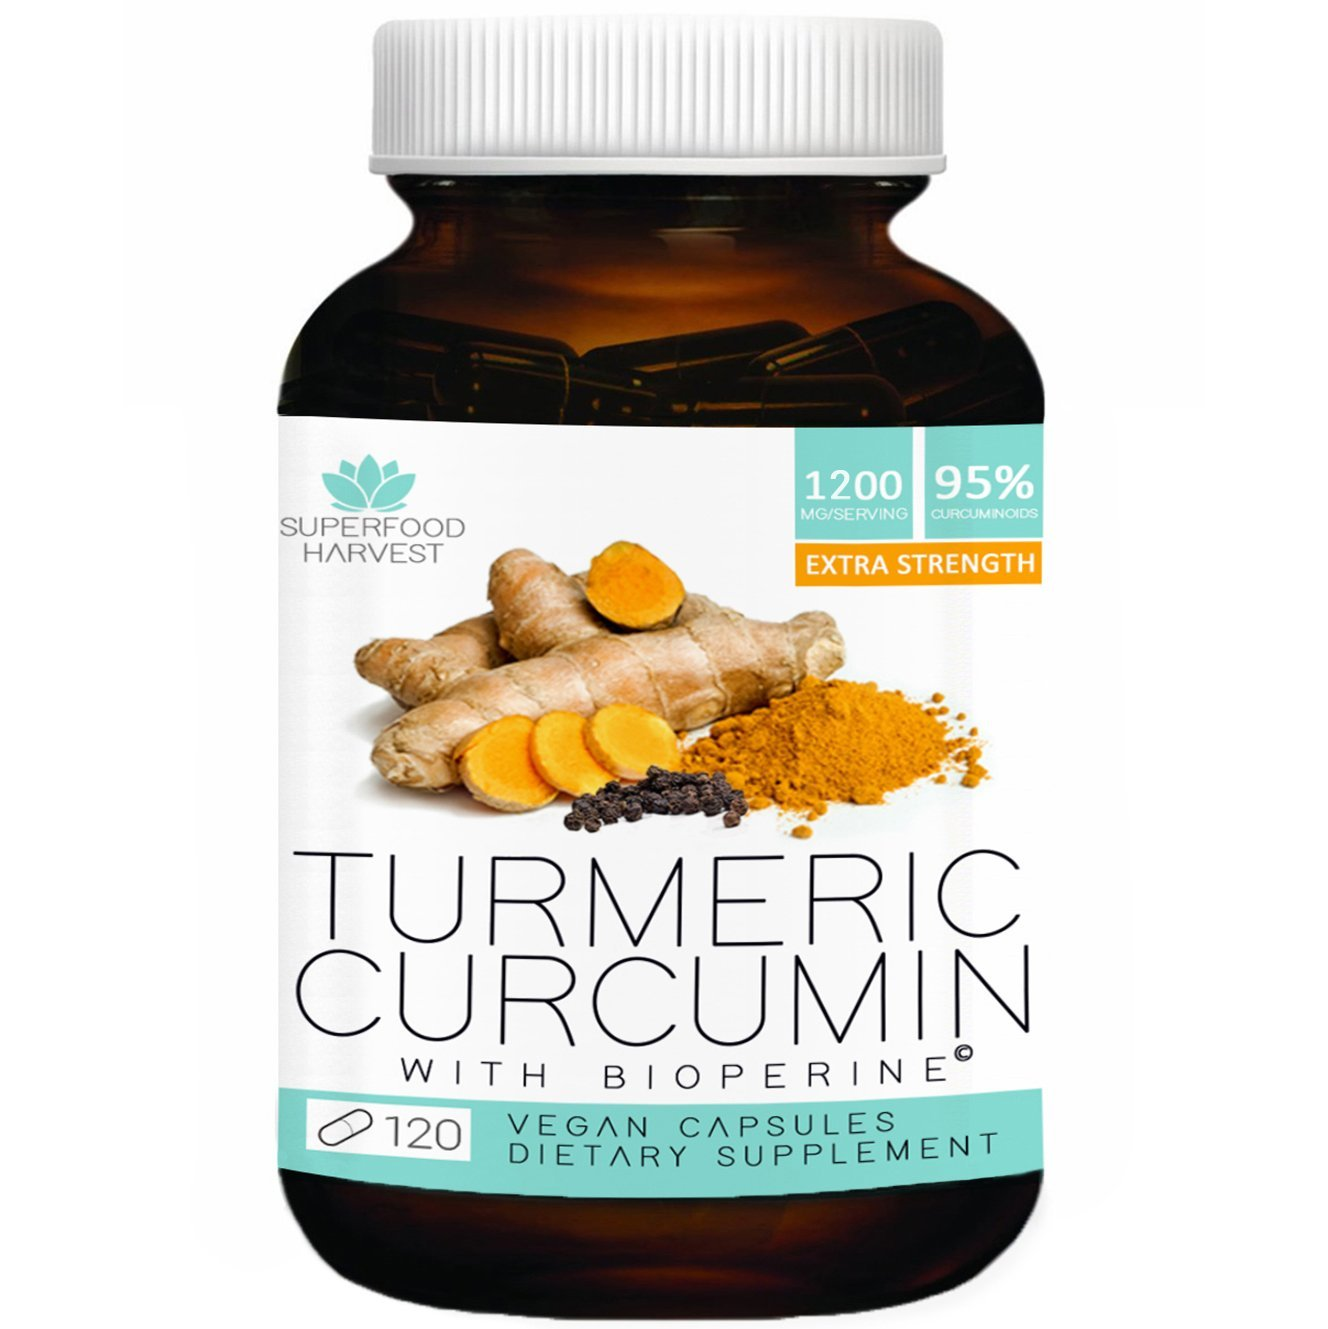 Organic Turmeric Curcumin with Bioperine® - 1200mg ( 120 Capsules ) - Extra Strength Pain Relief & Joint Support Supplement - Non-GMO , Made in the USA